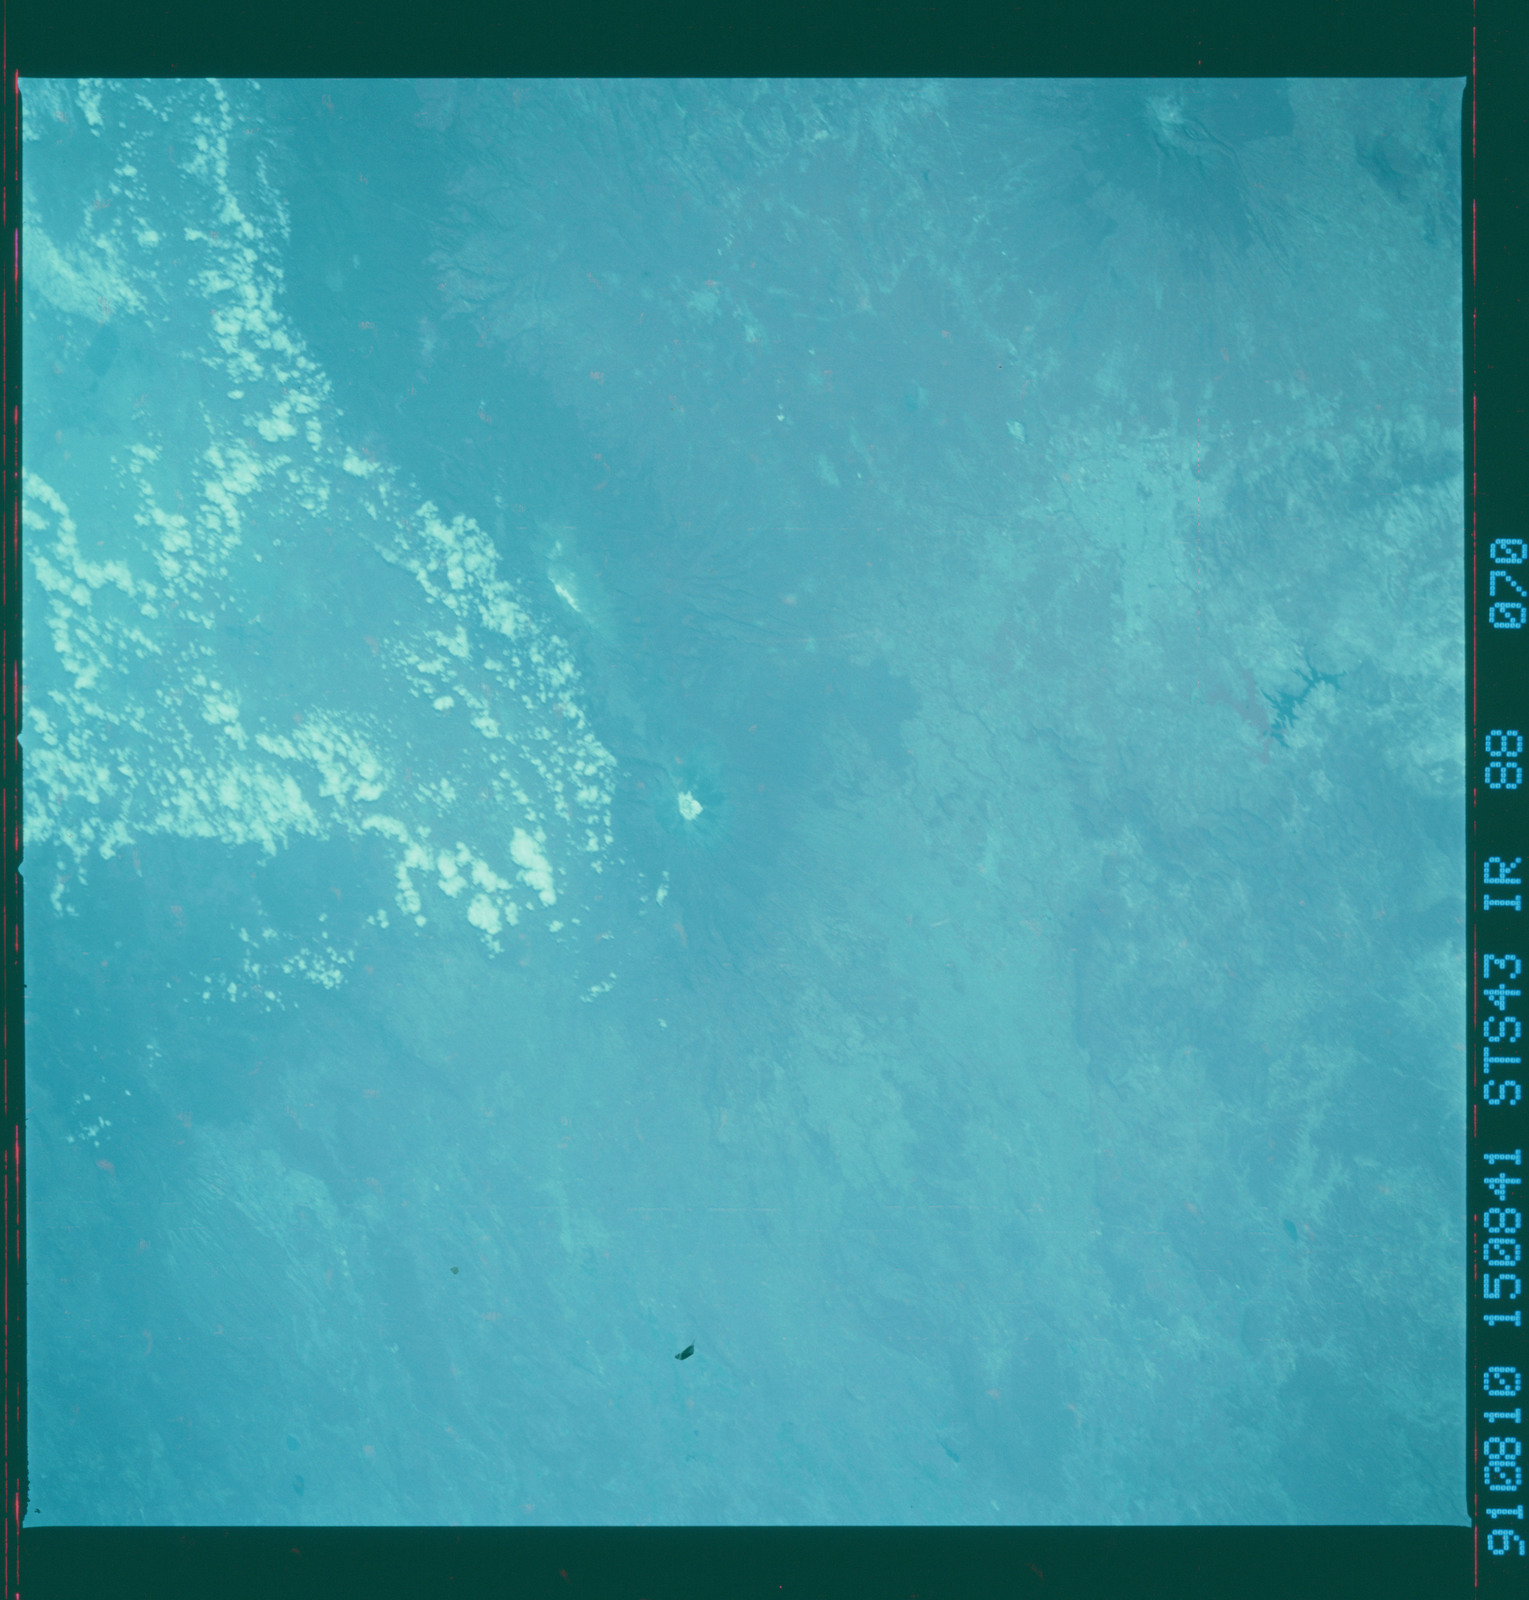 S43-88-070 - STS-043 - STS-43 earth observations